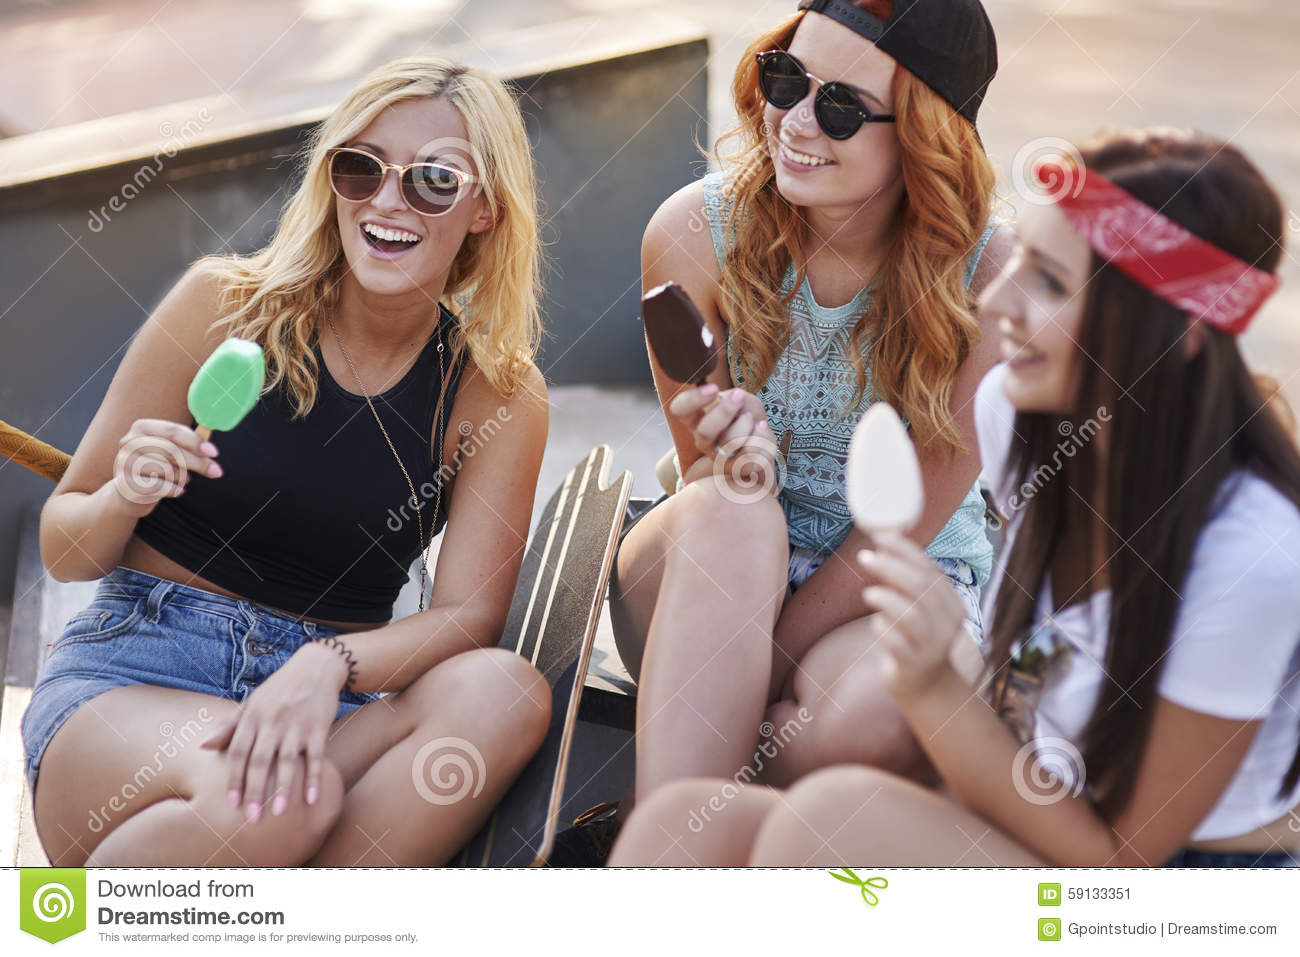 How to Spend Time Outdoors with Friends